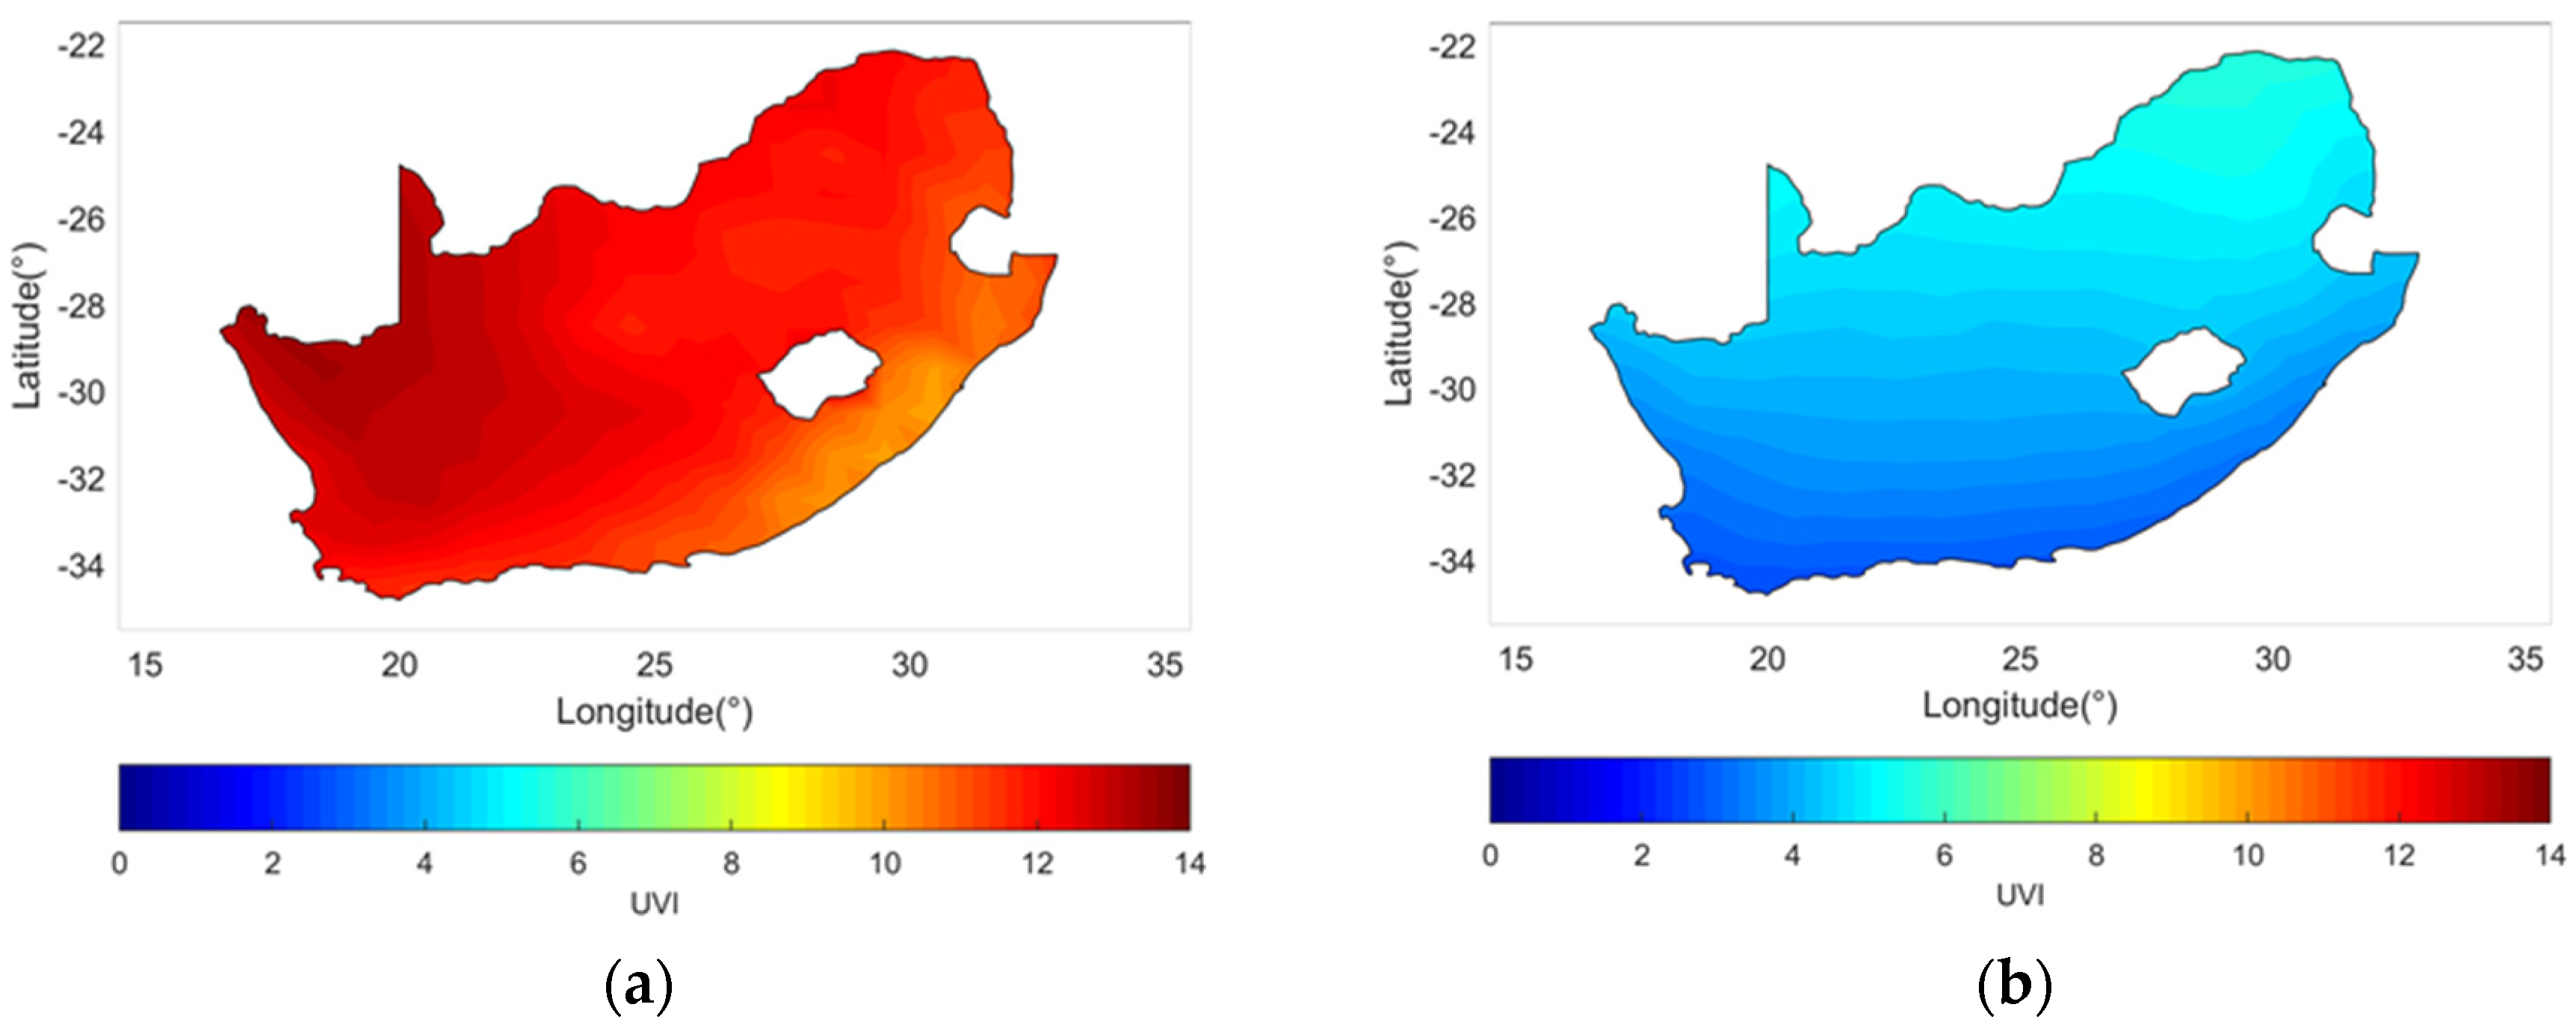 Atmosphere Free Full Text The Incidence Of Skin Cancer In Relation To Climate Change In South Africa Html